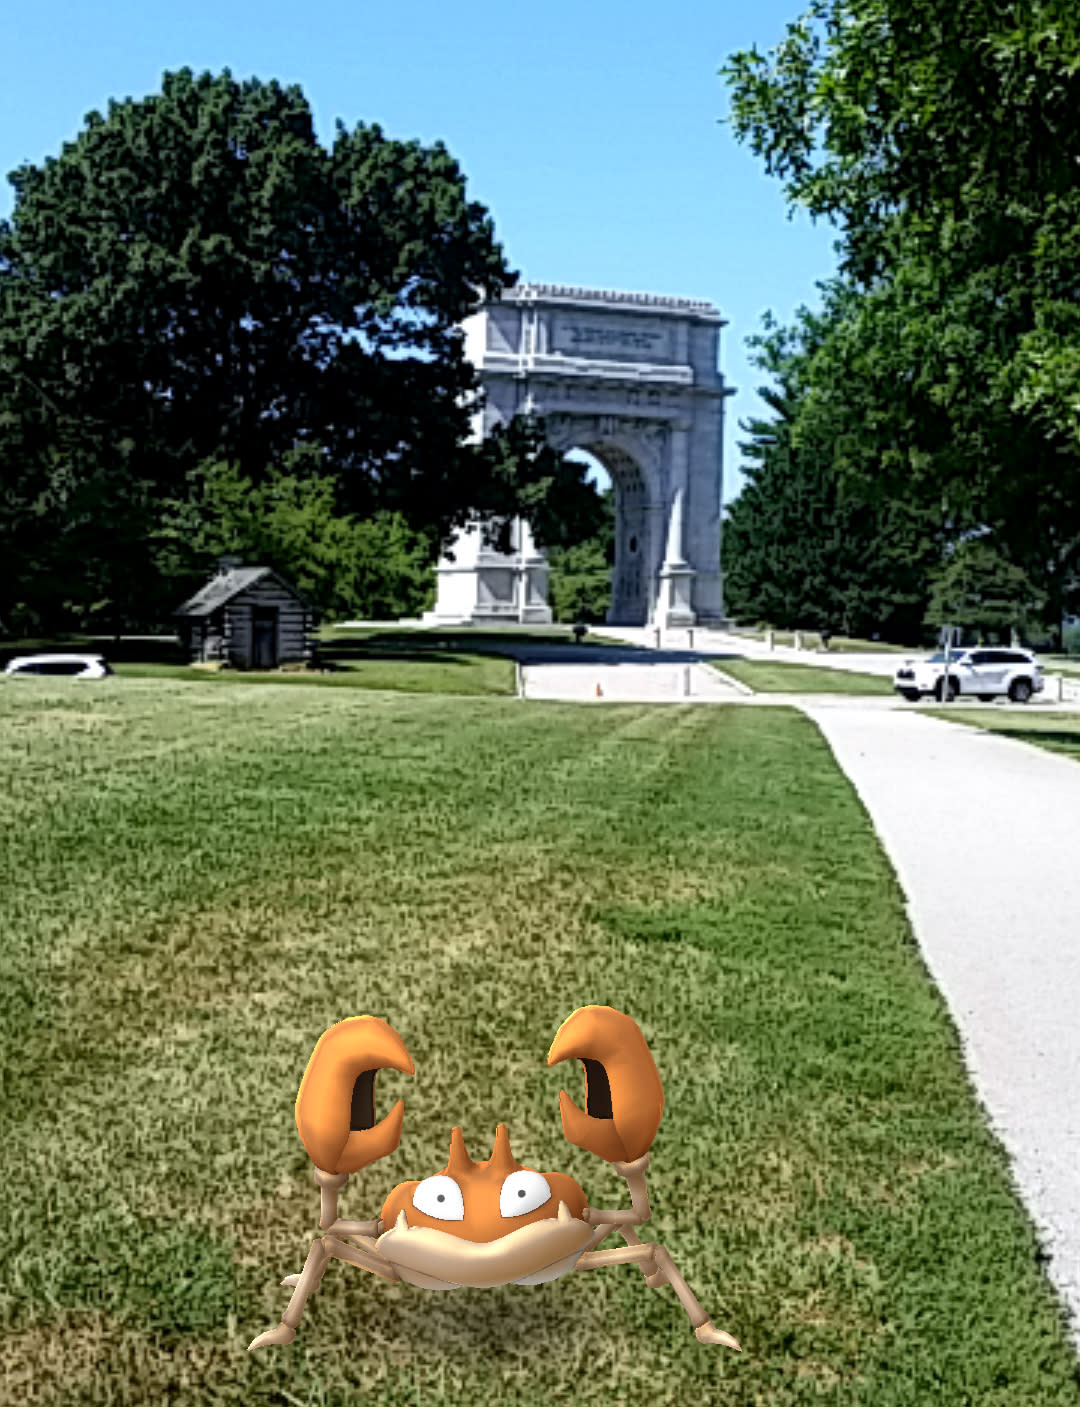 No Reasons to be Krabby at the National Memorial Arch